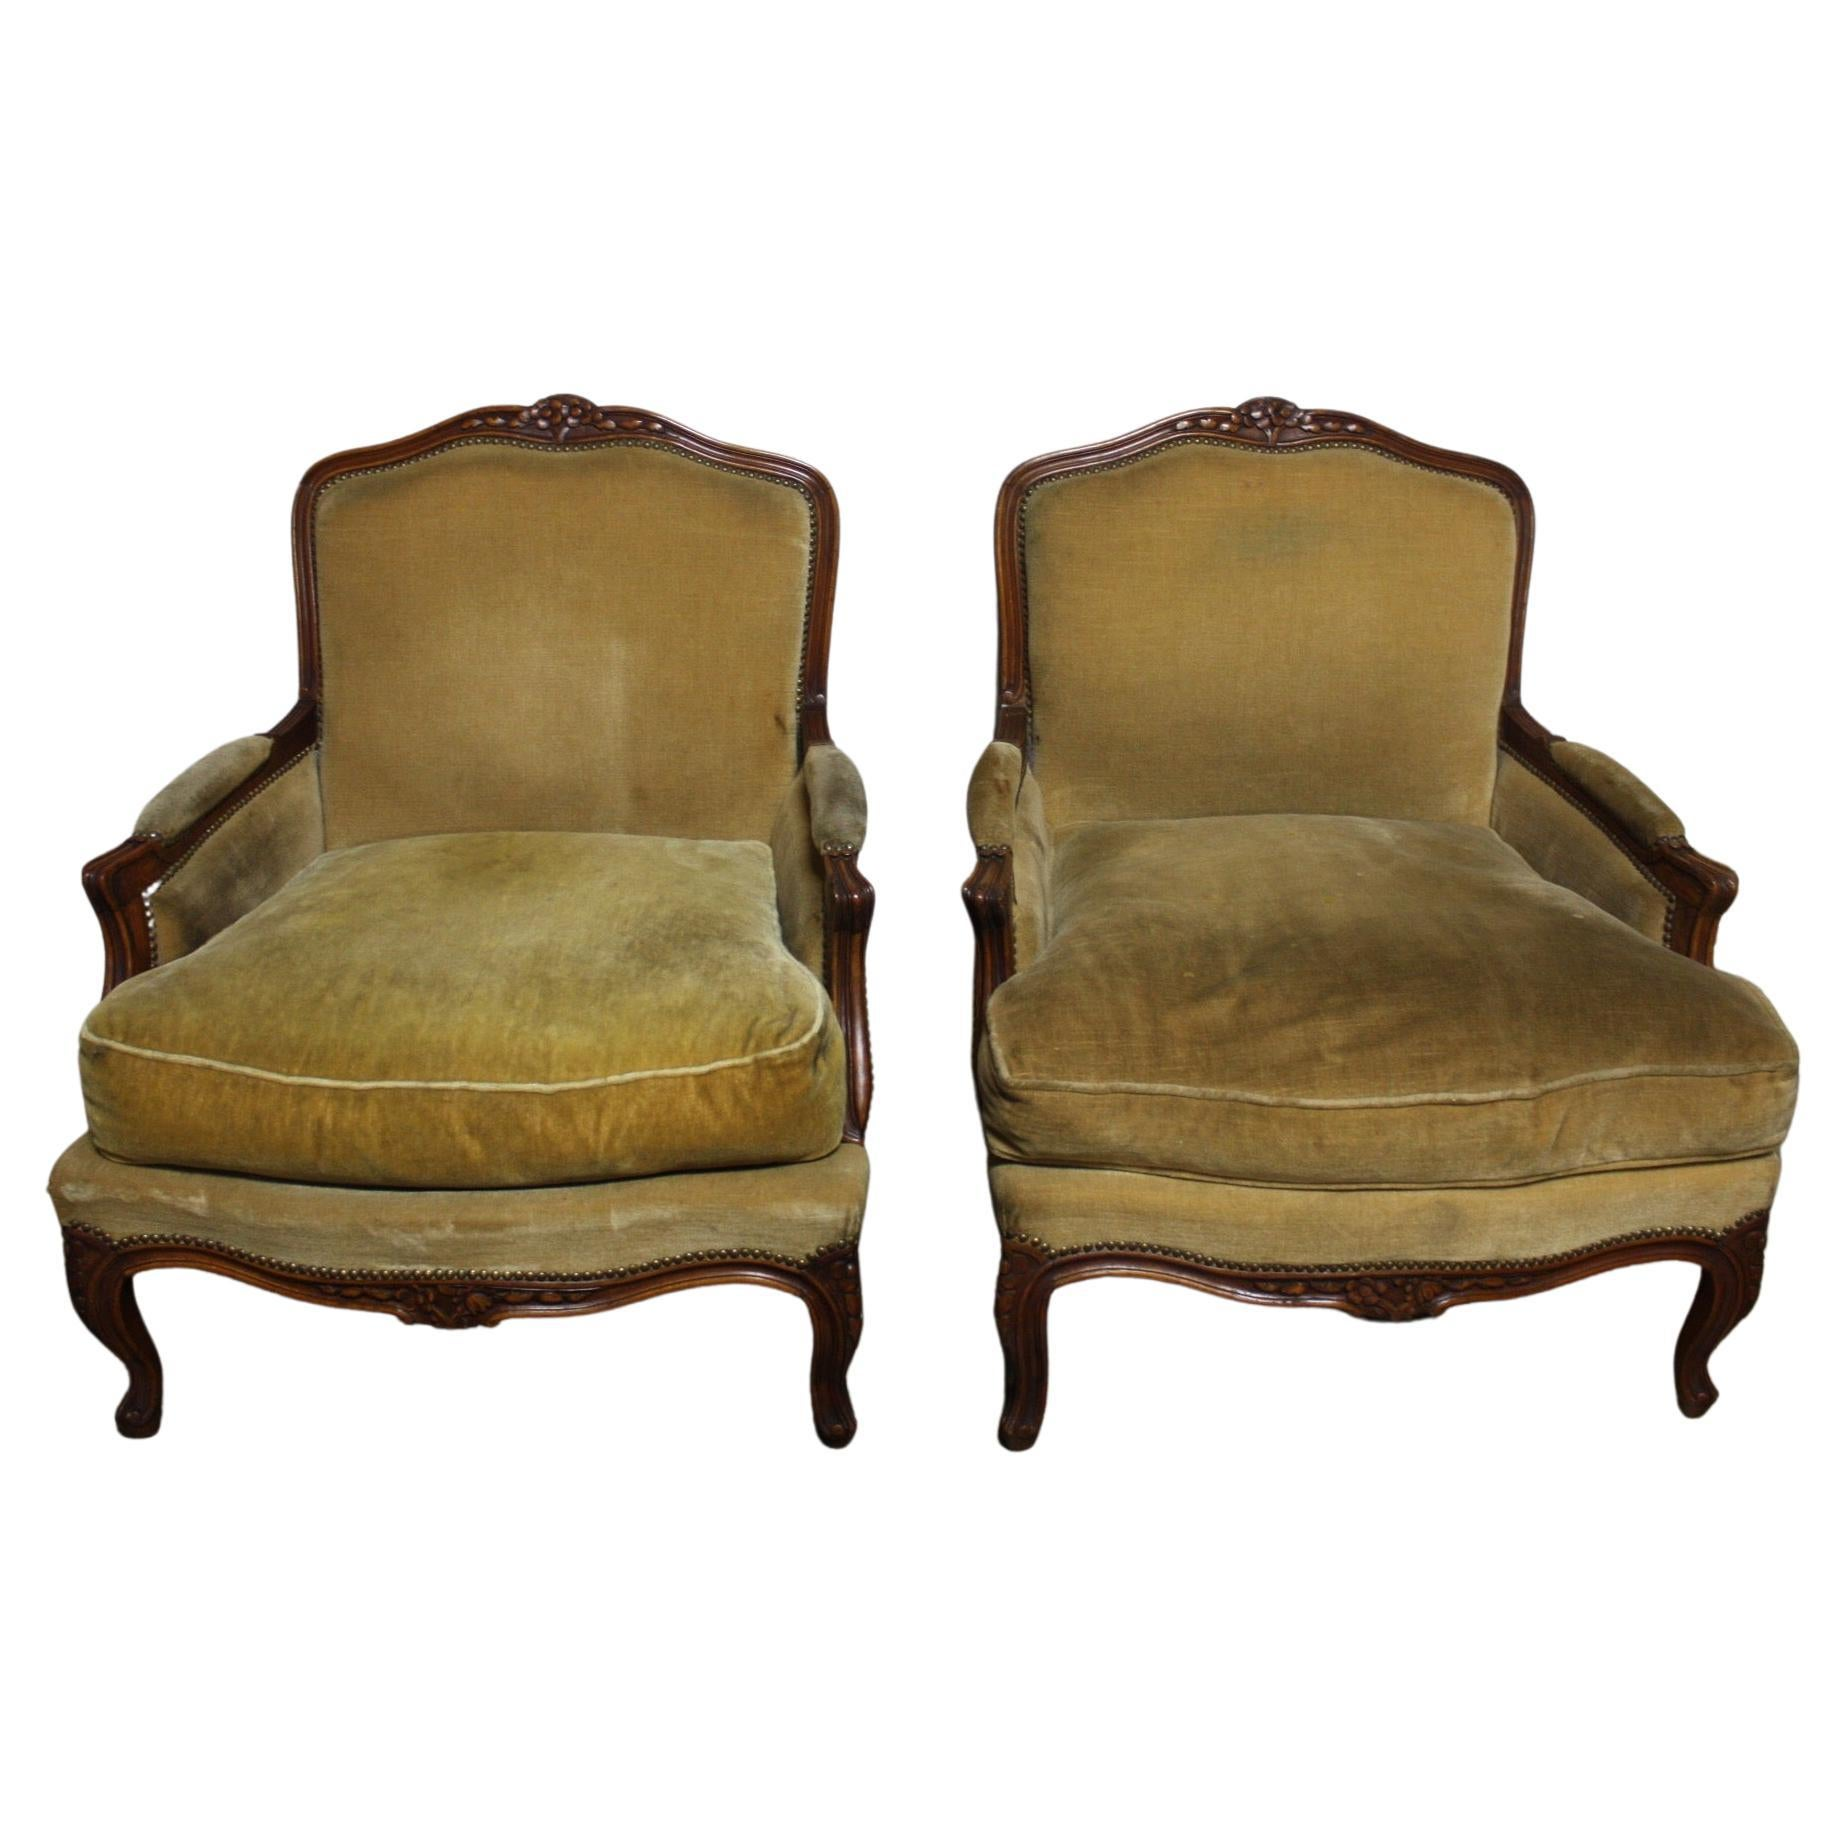 Large Pair of French 19th Century Bergere Chairs